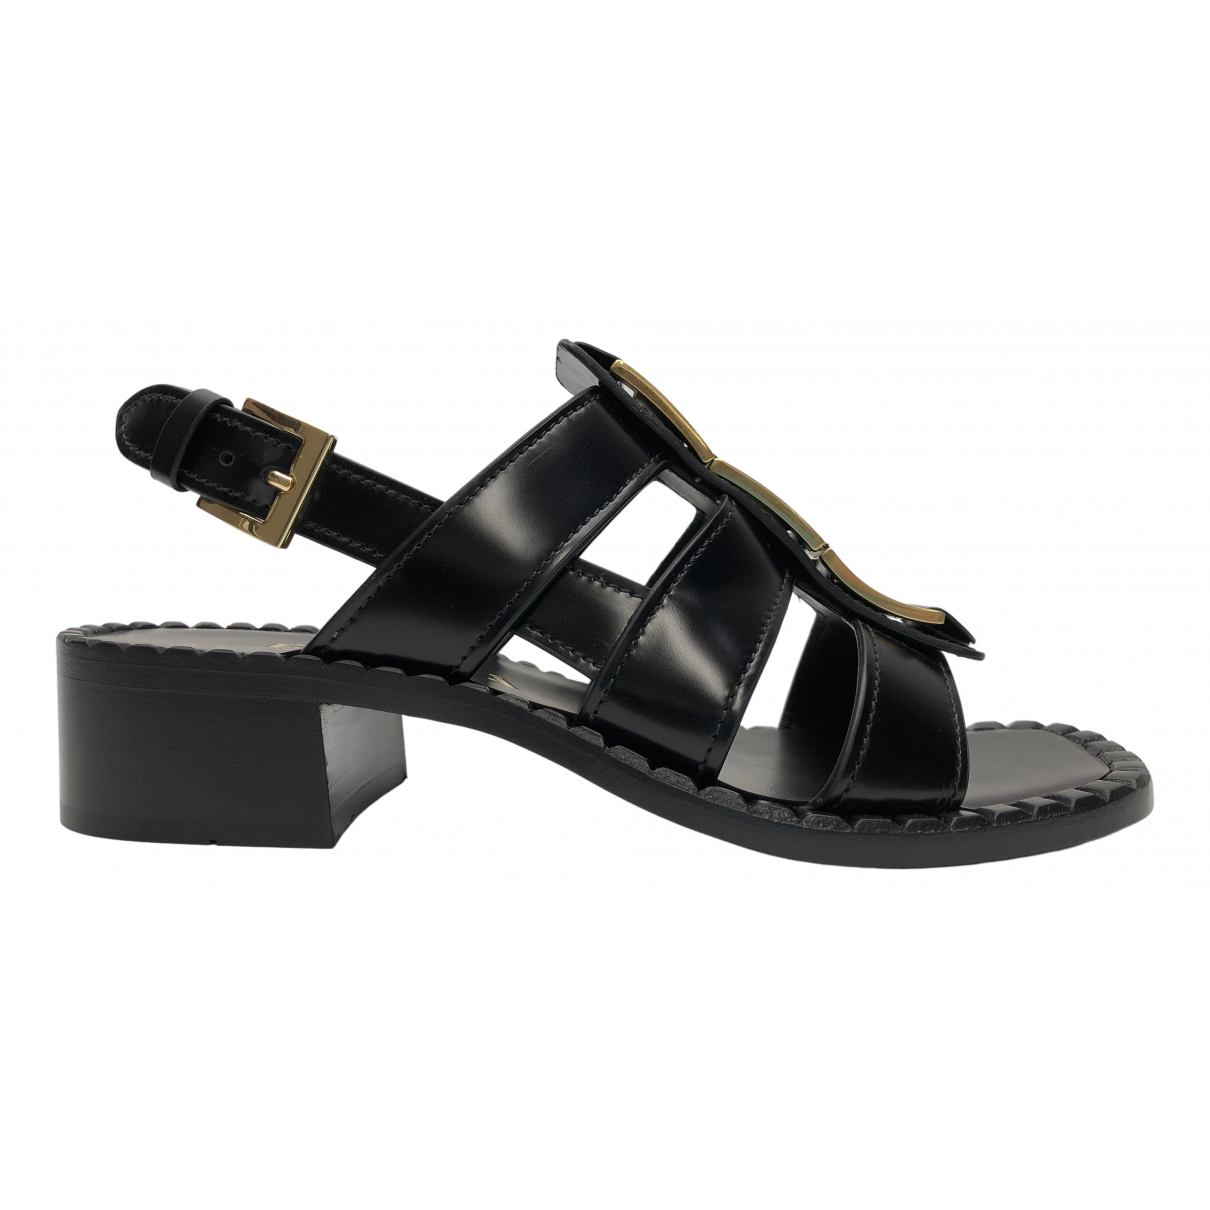 Prada \N Black Leather Sandals for Women 37 EU